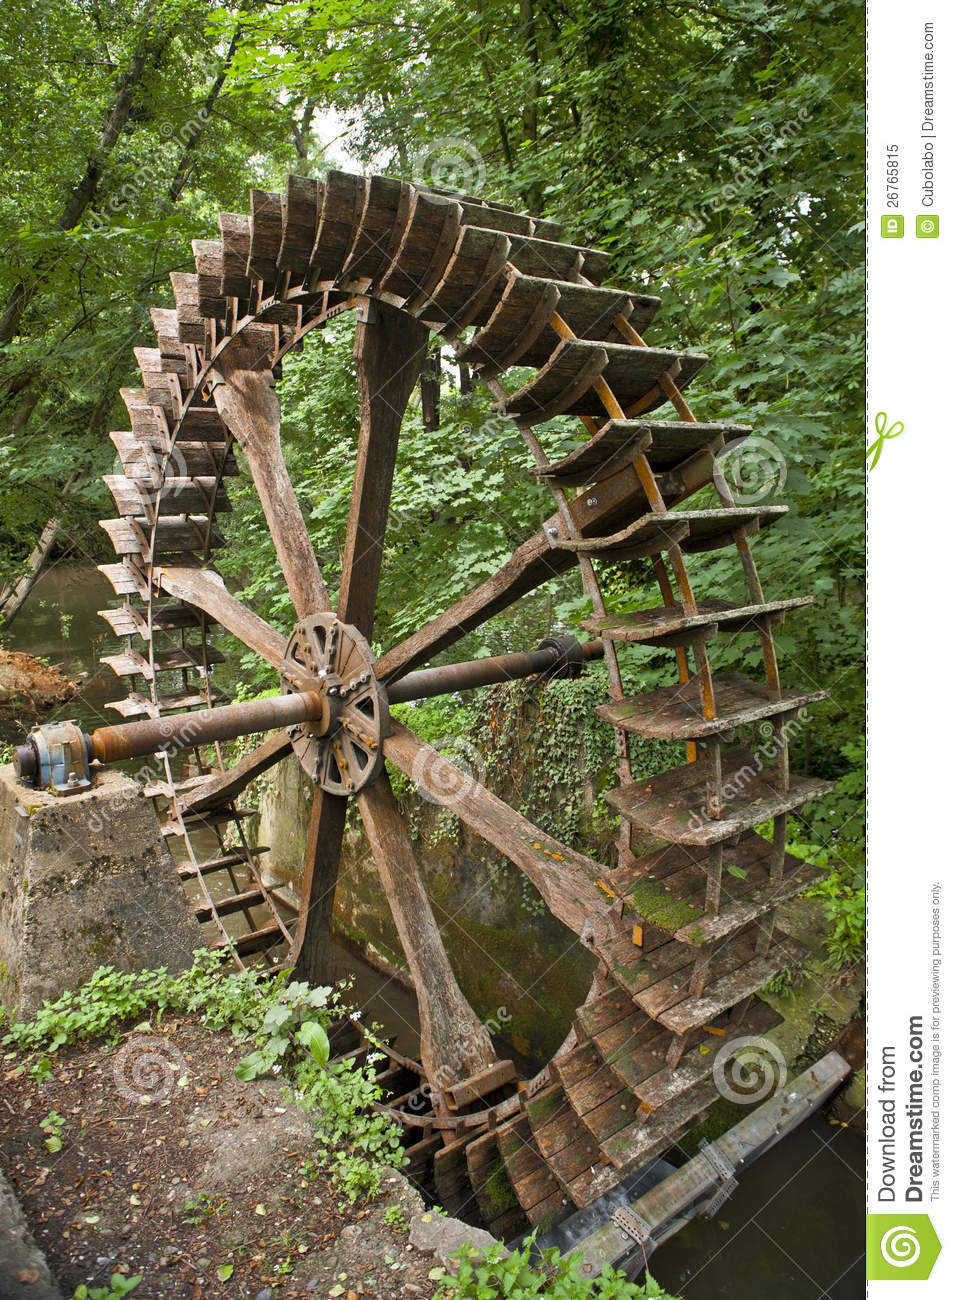 Old water wheel in limburg, Germany.